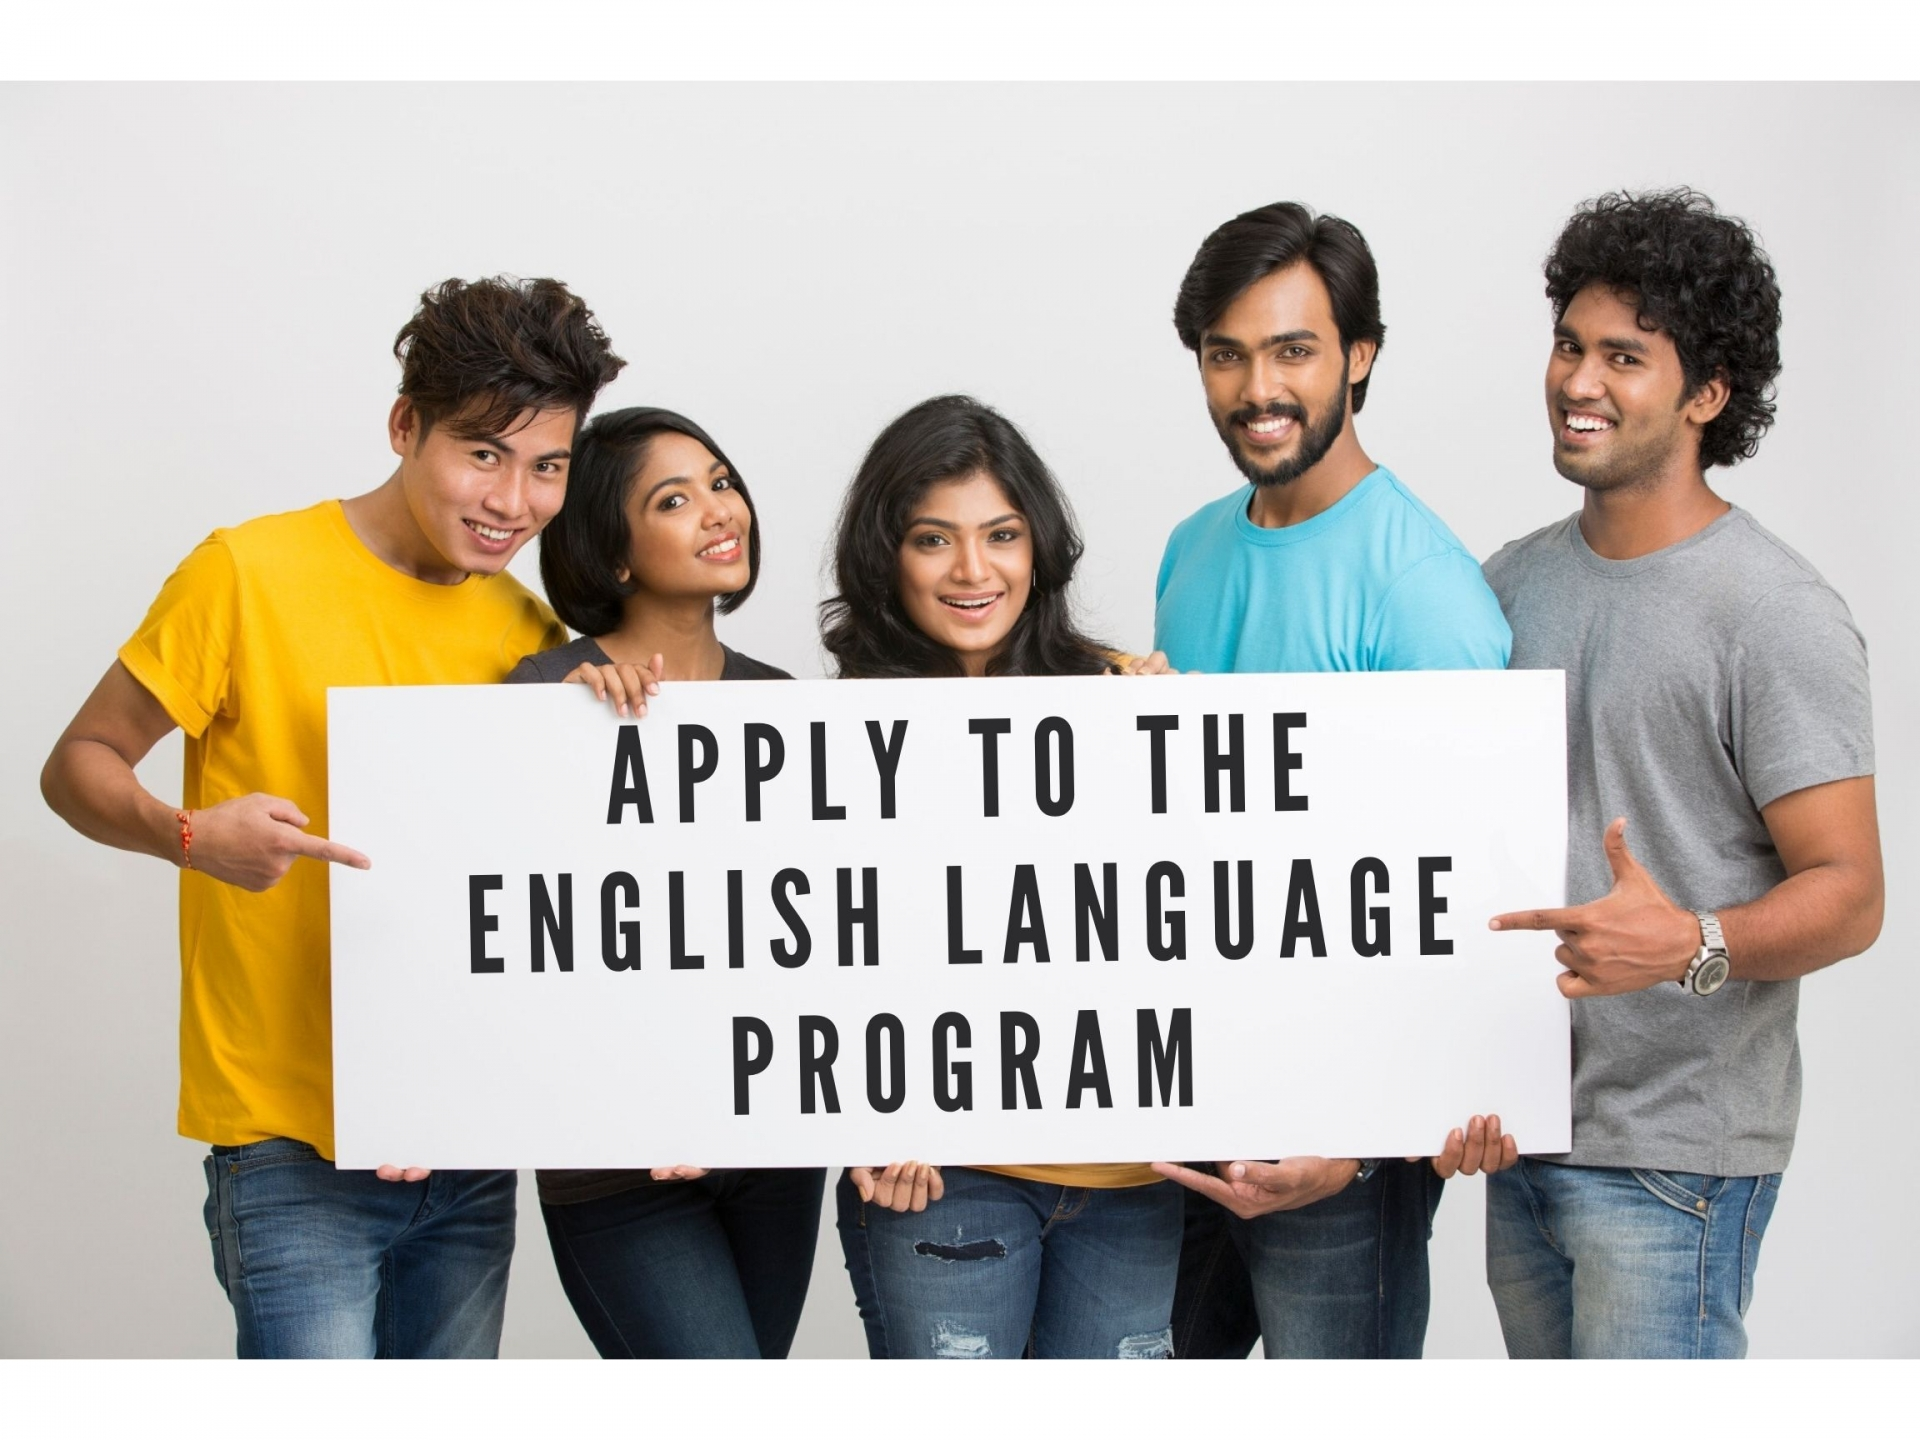 Students holding sign that says, Apply to the English Language Program